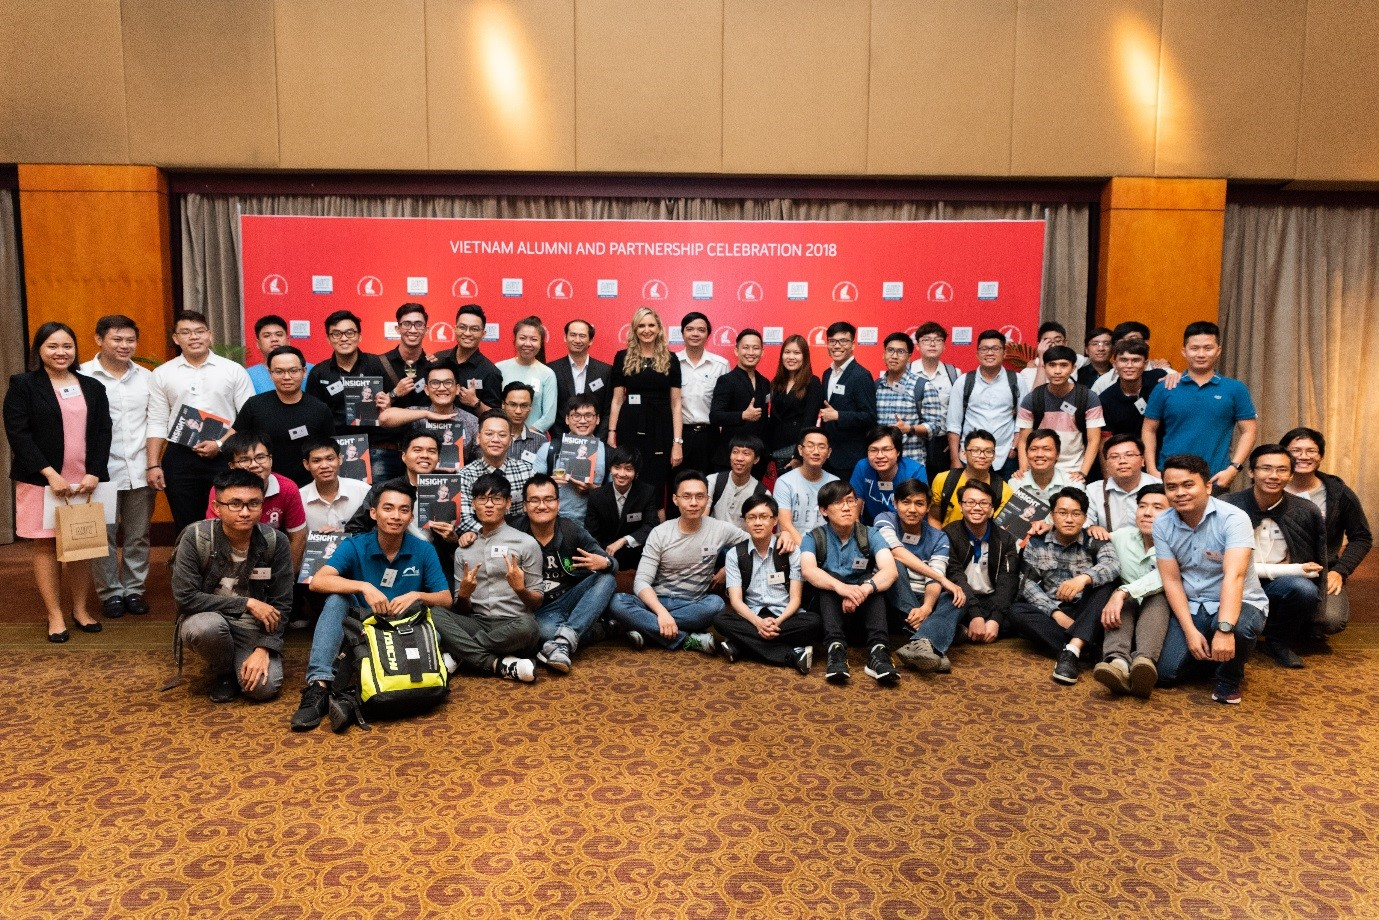 Photo from the AUT event in Vietnam